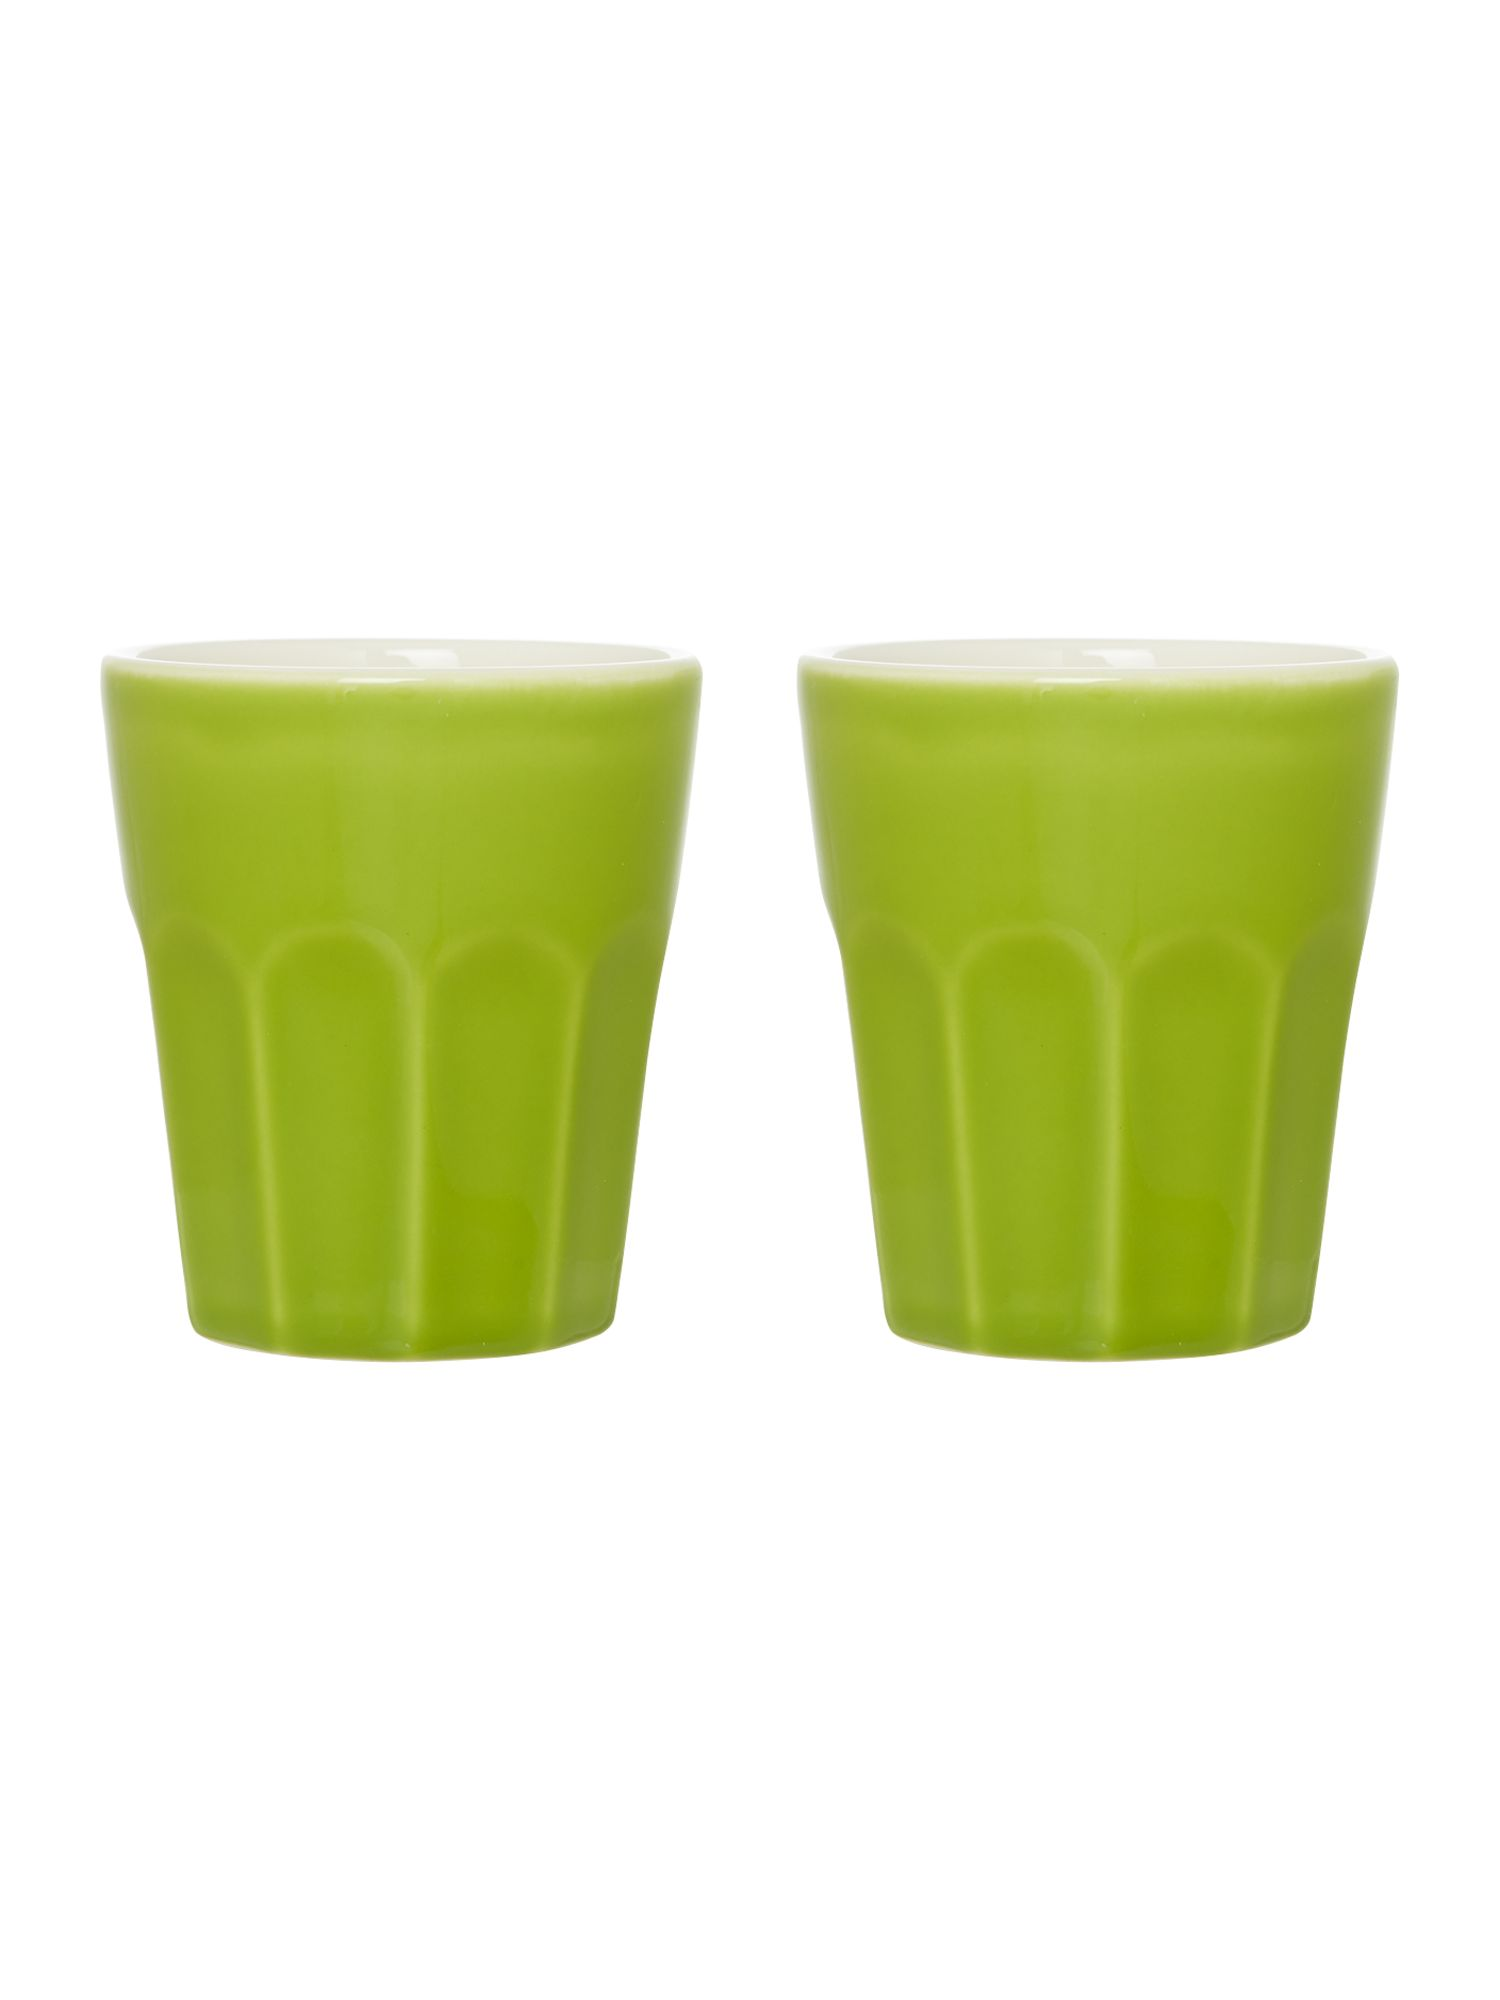 Green ceramic set of two cappucino mugs